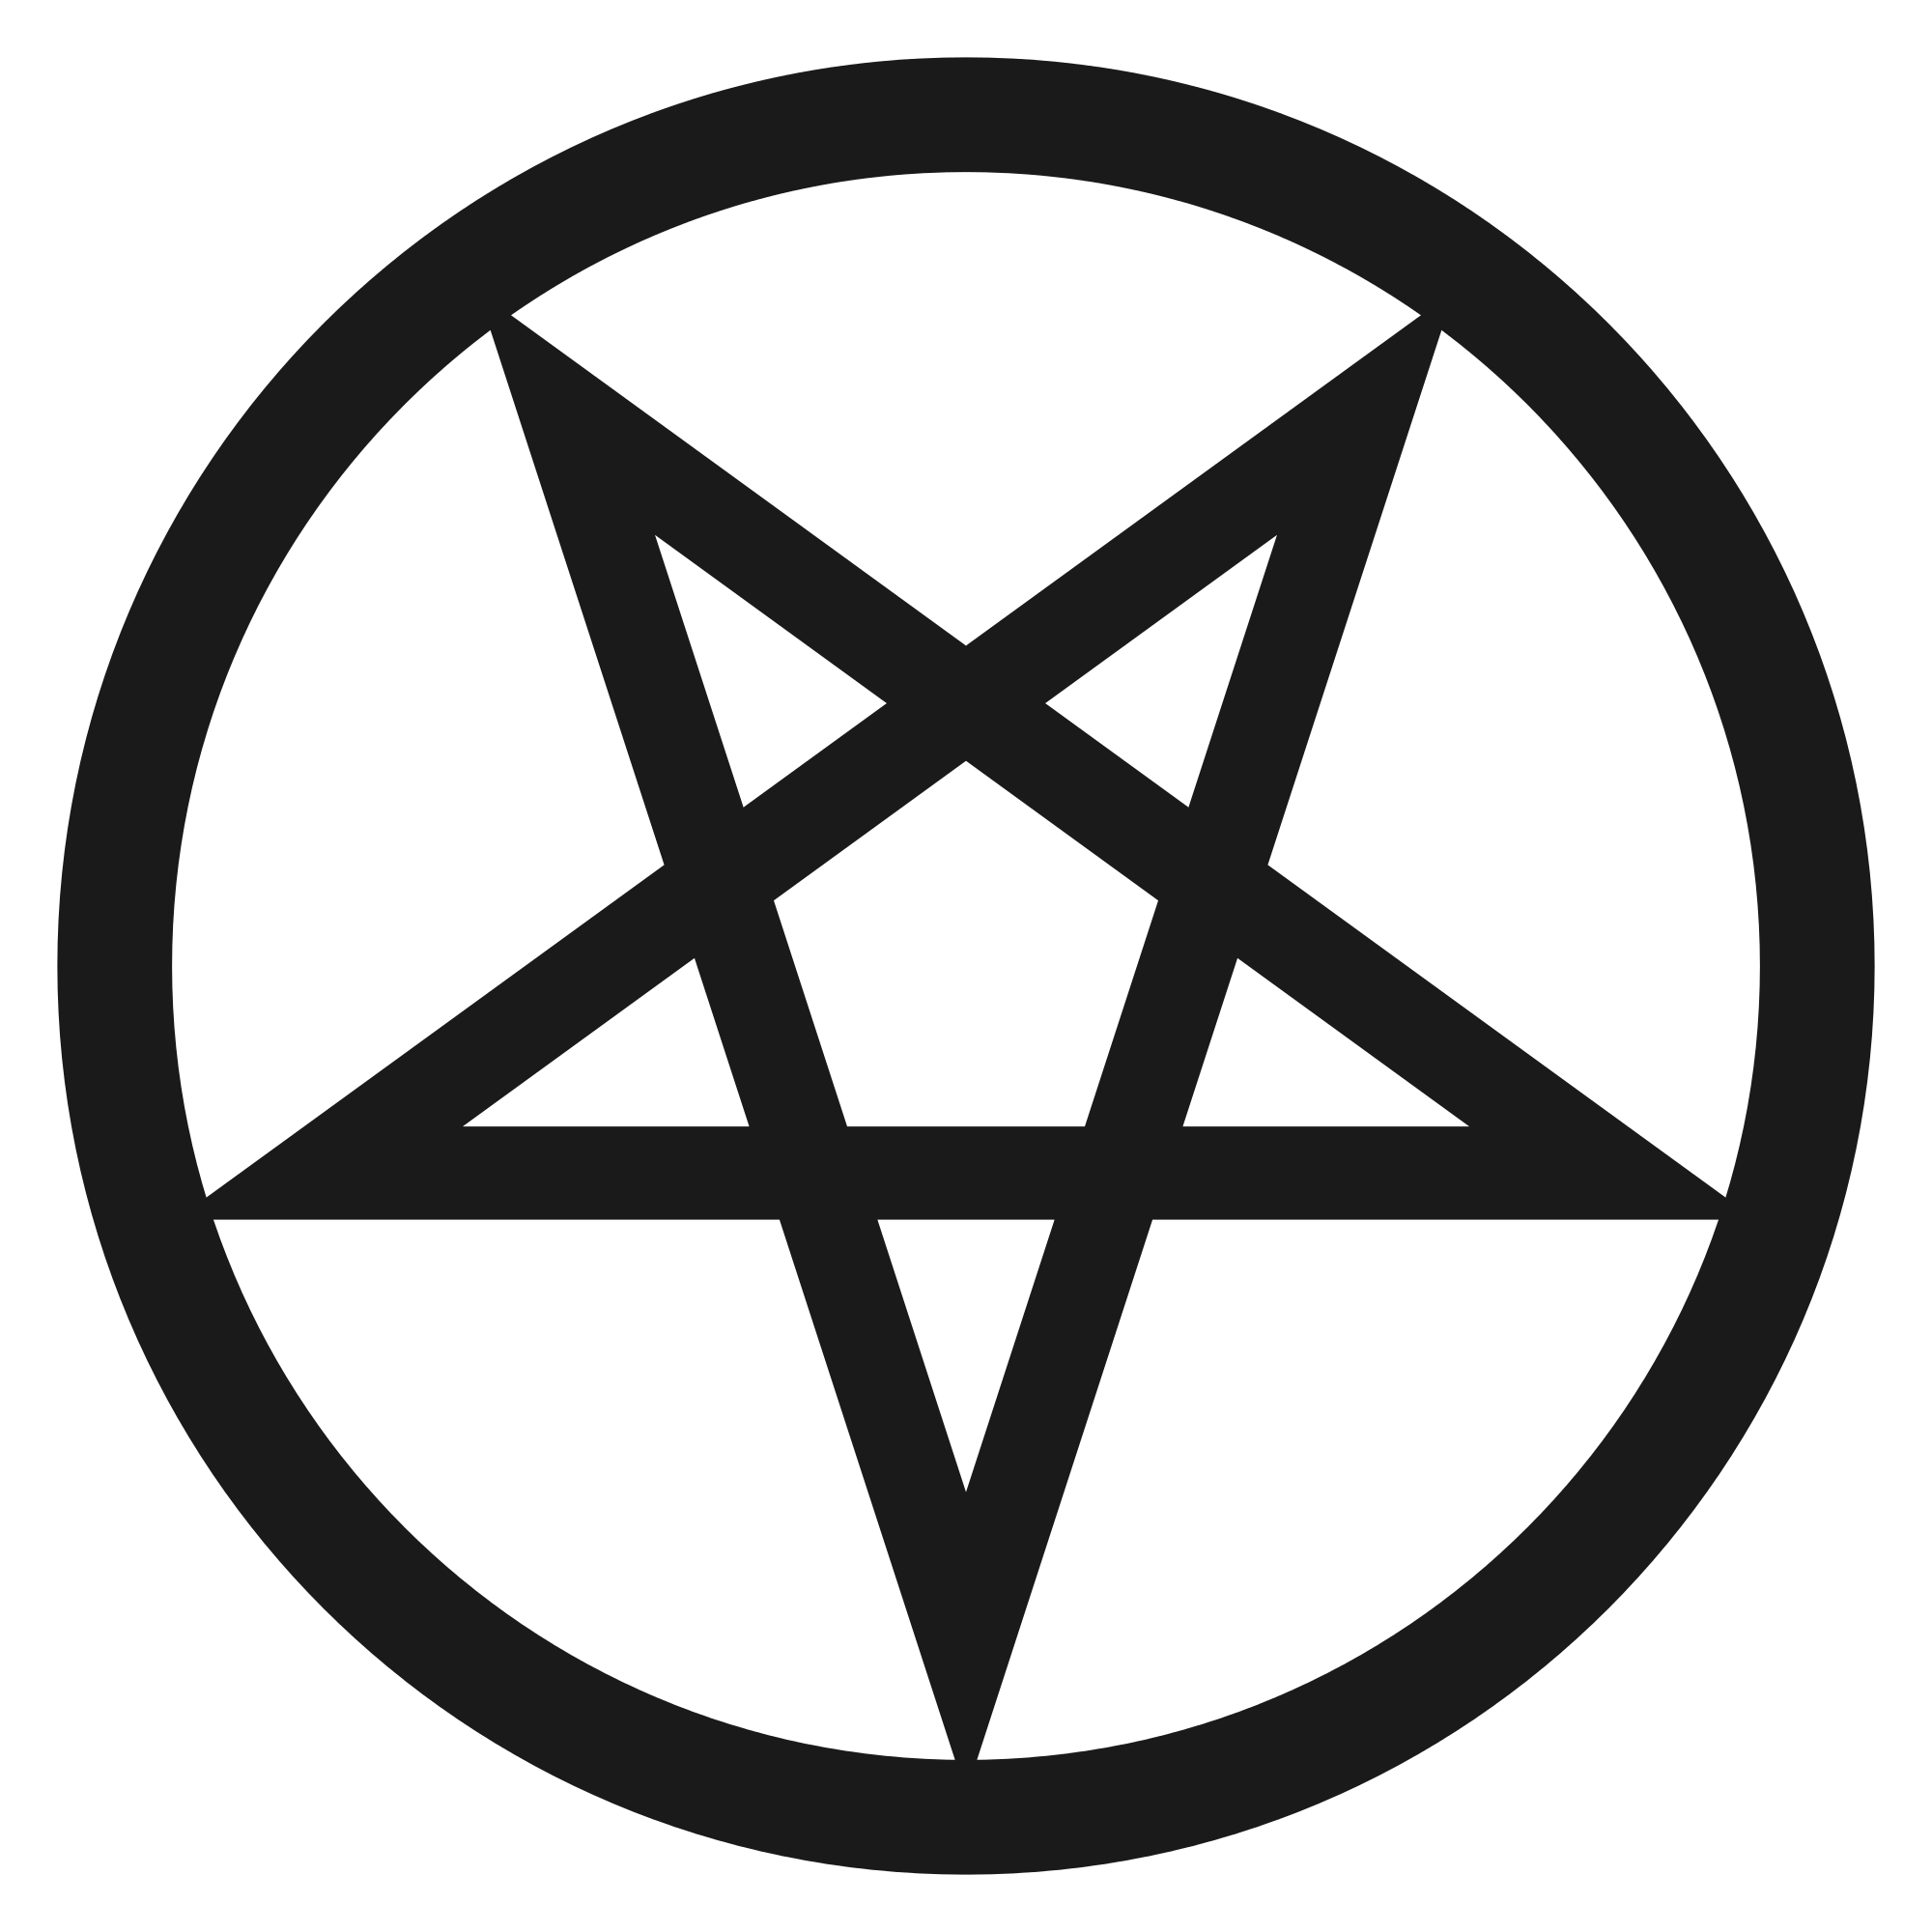 Pentacle transparent black and white